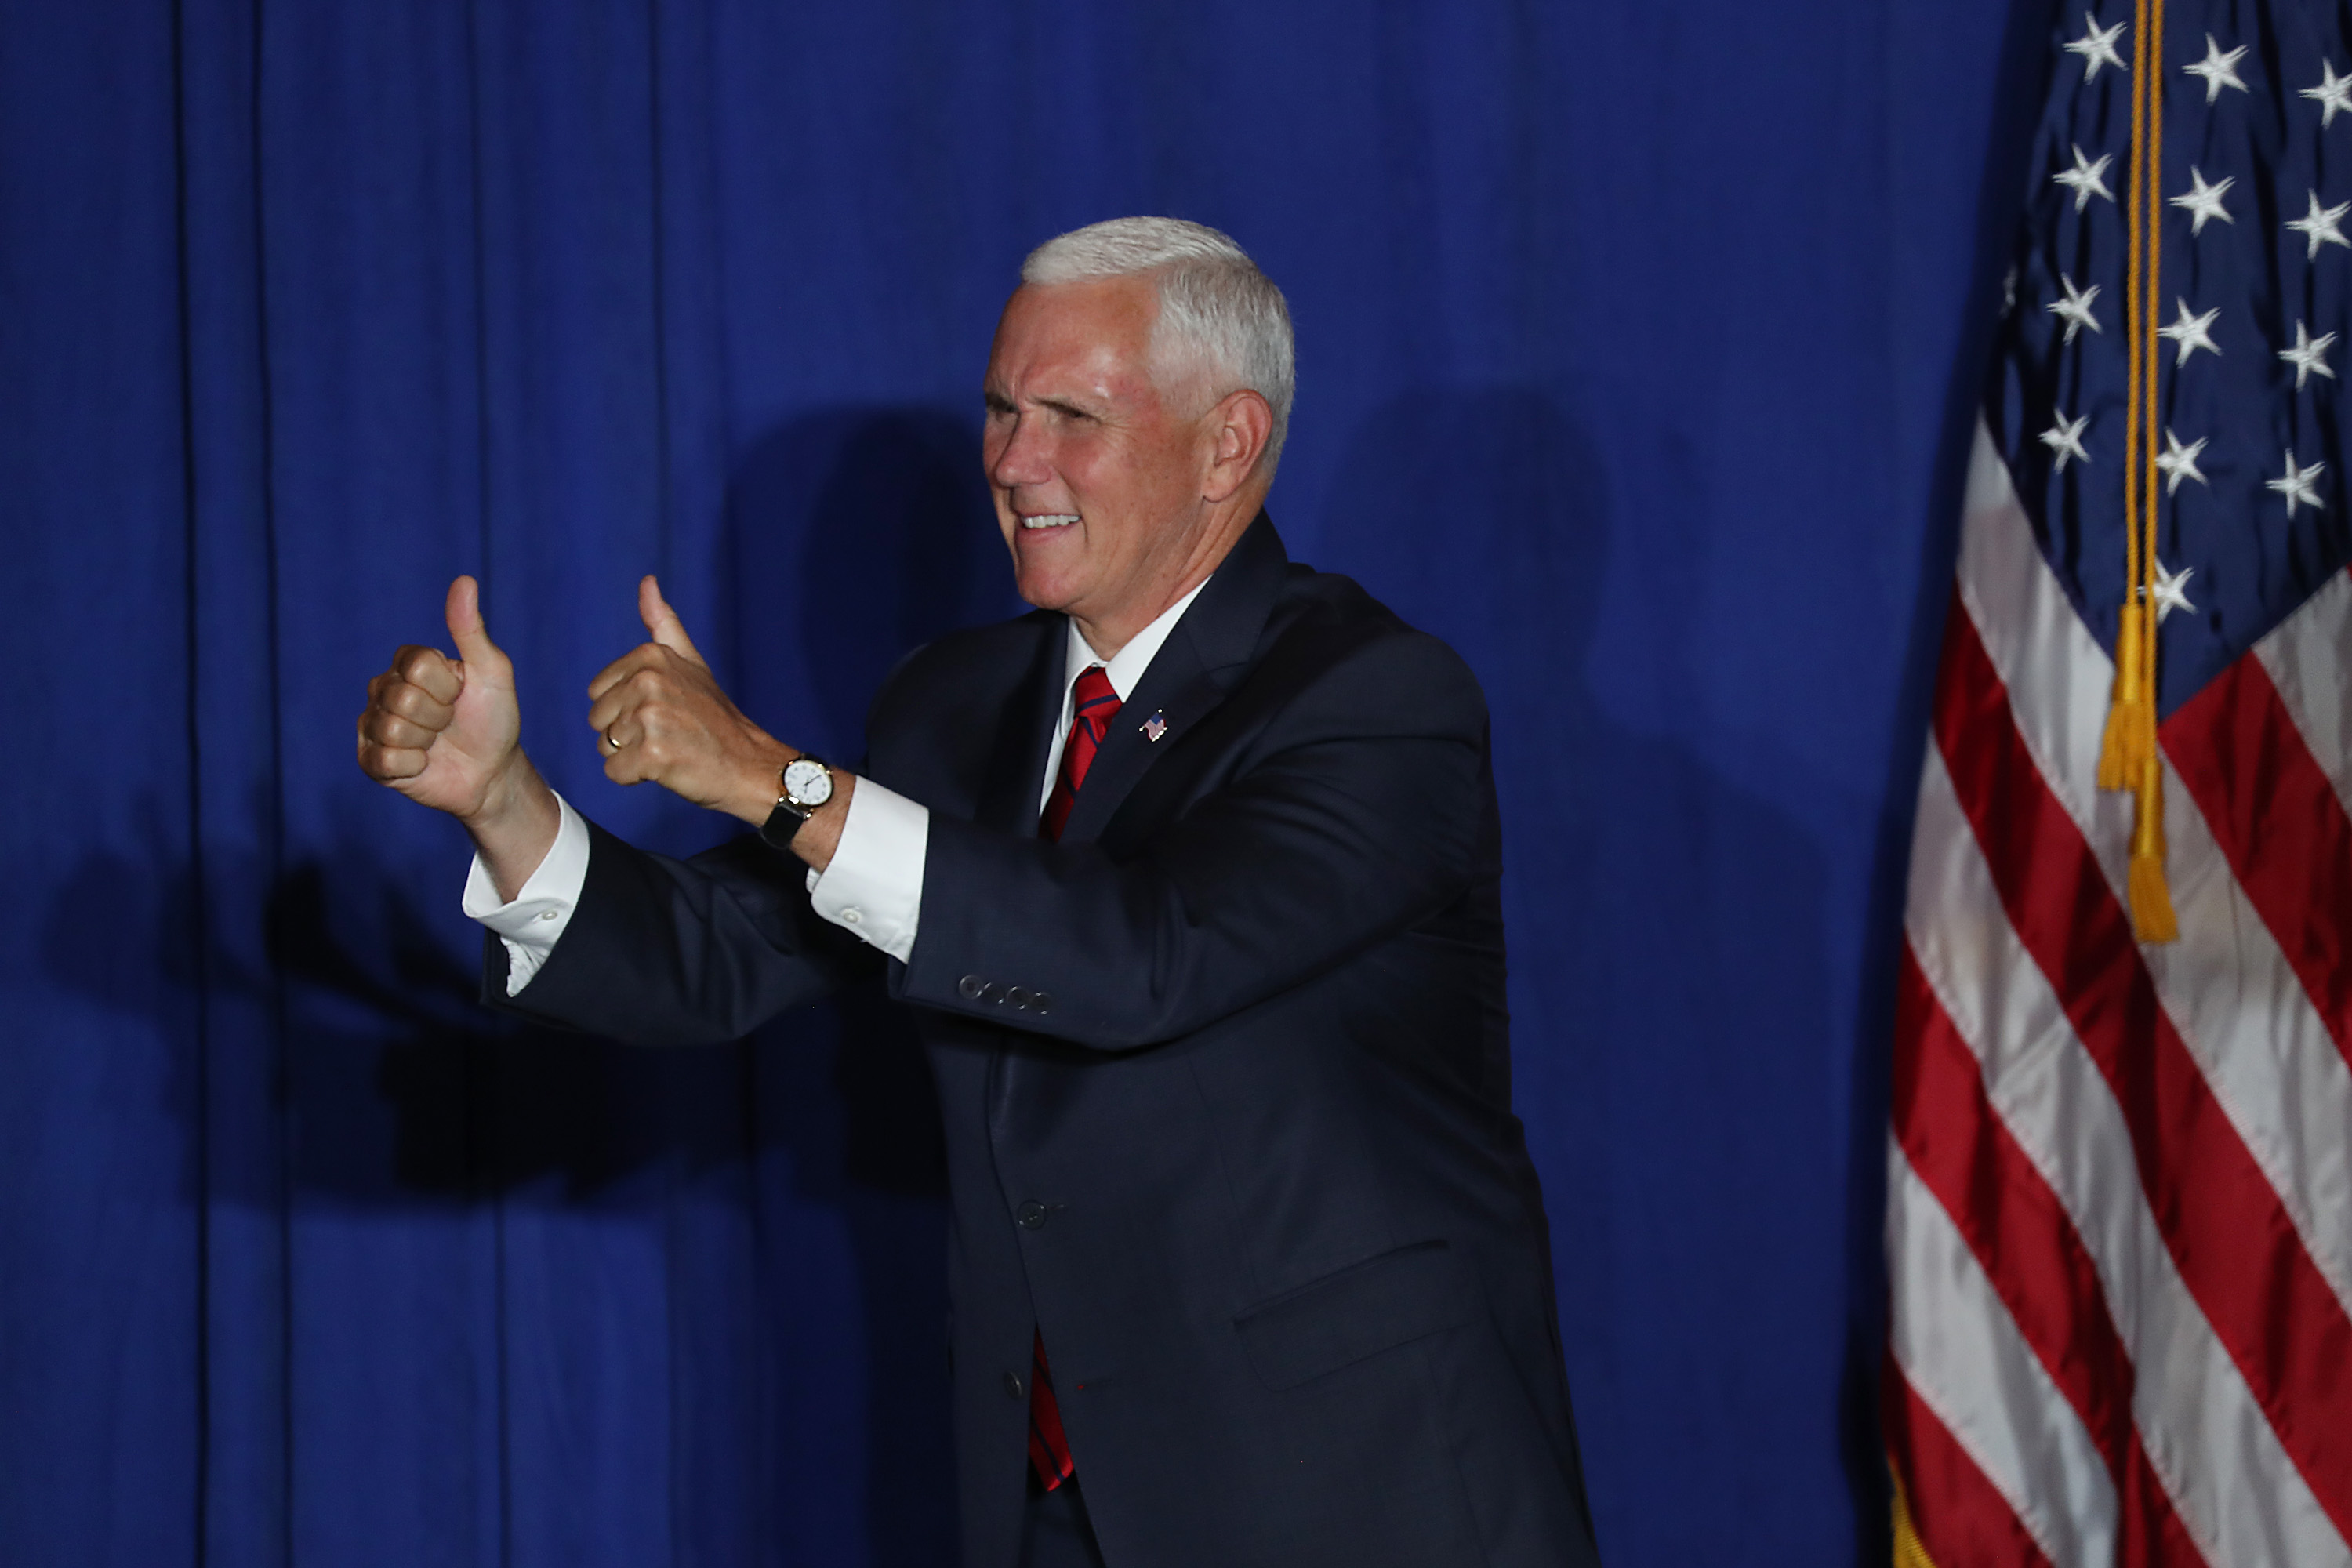 Mike Pence's Hollow Populism